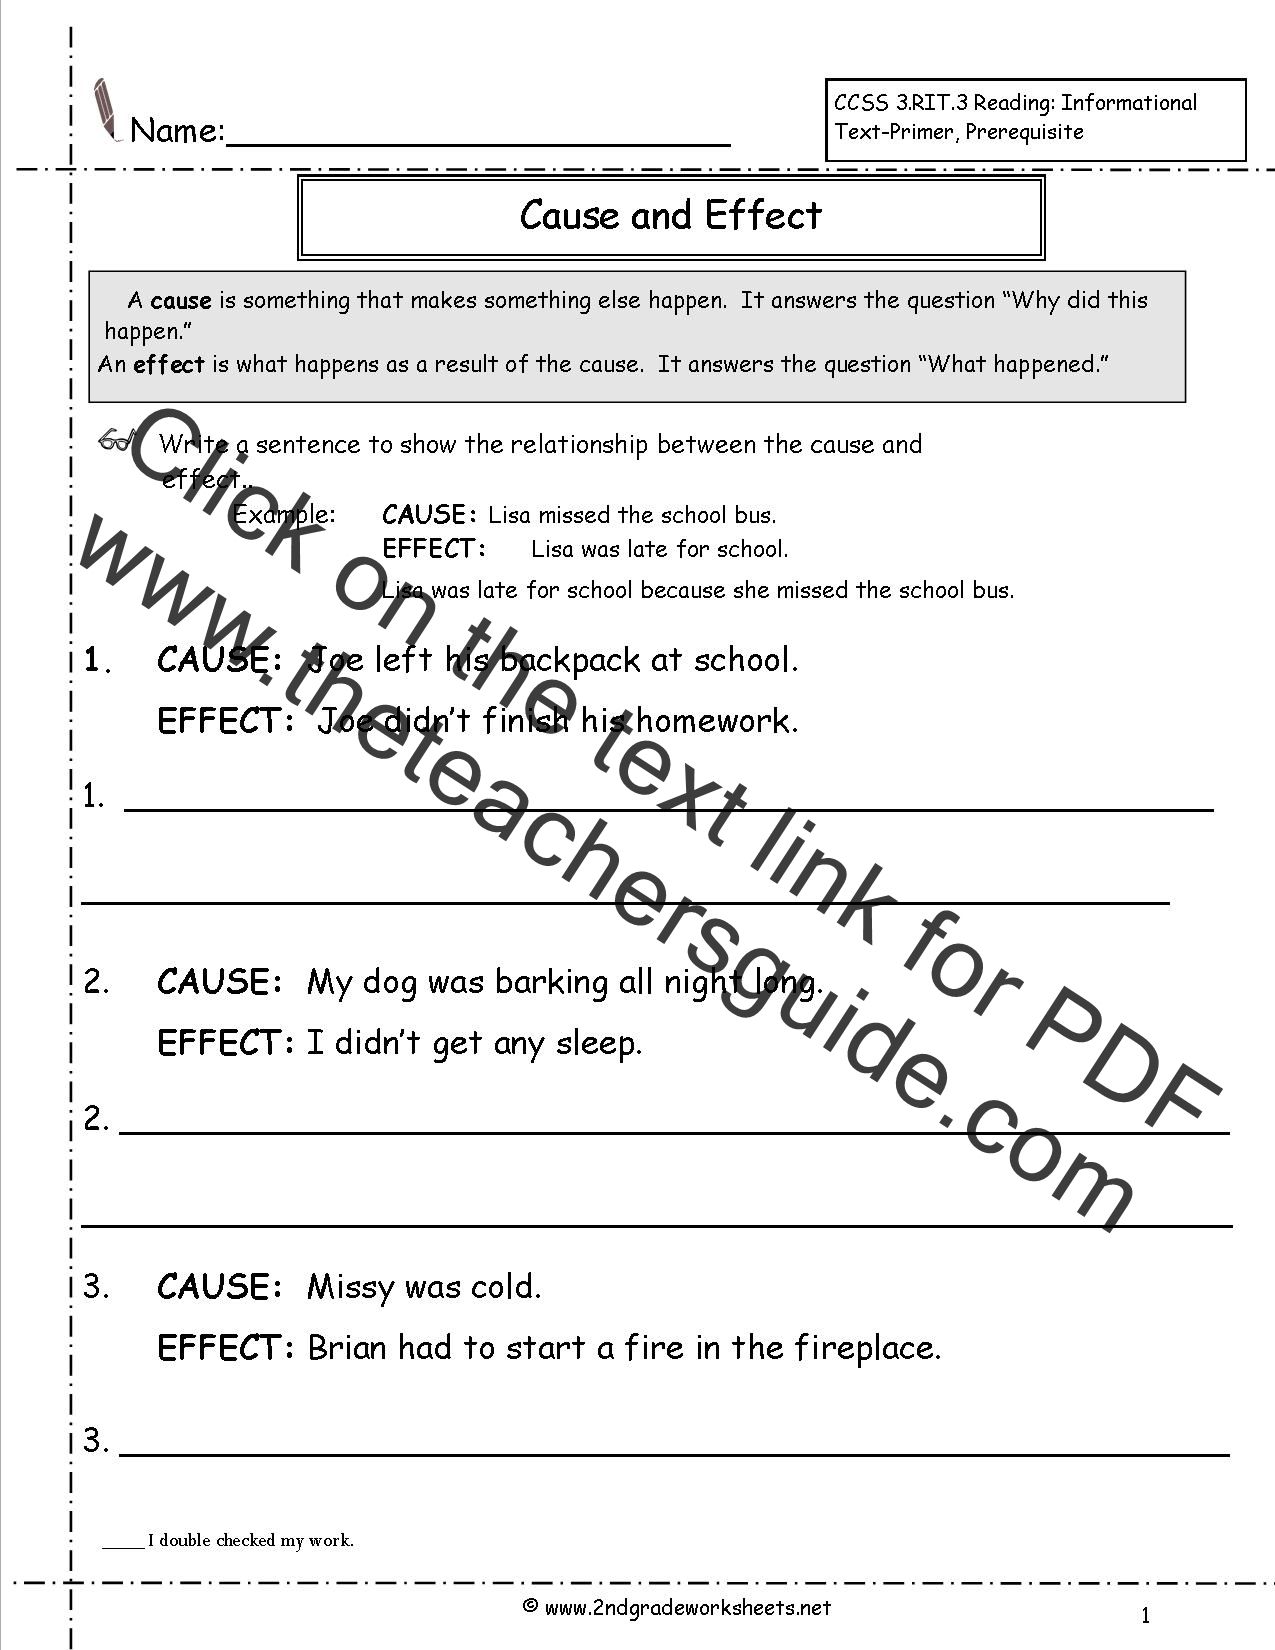 Printables Cause And Effect Worksheets For 3rd Grade cause and effect worksheets